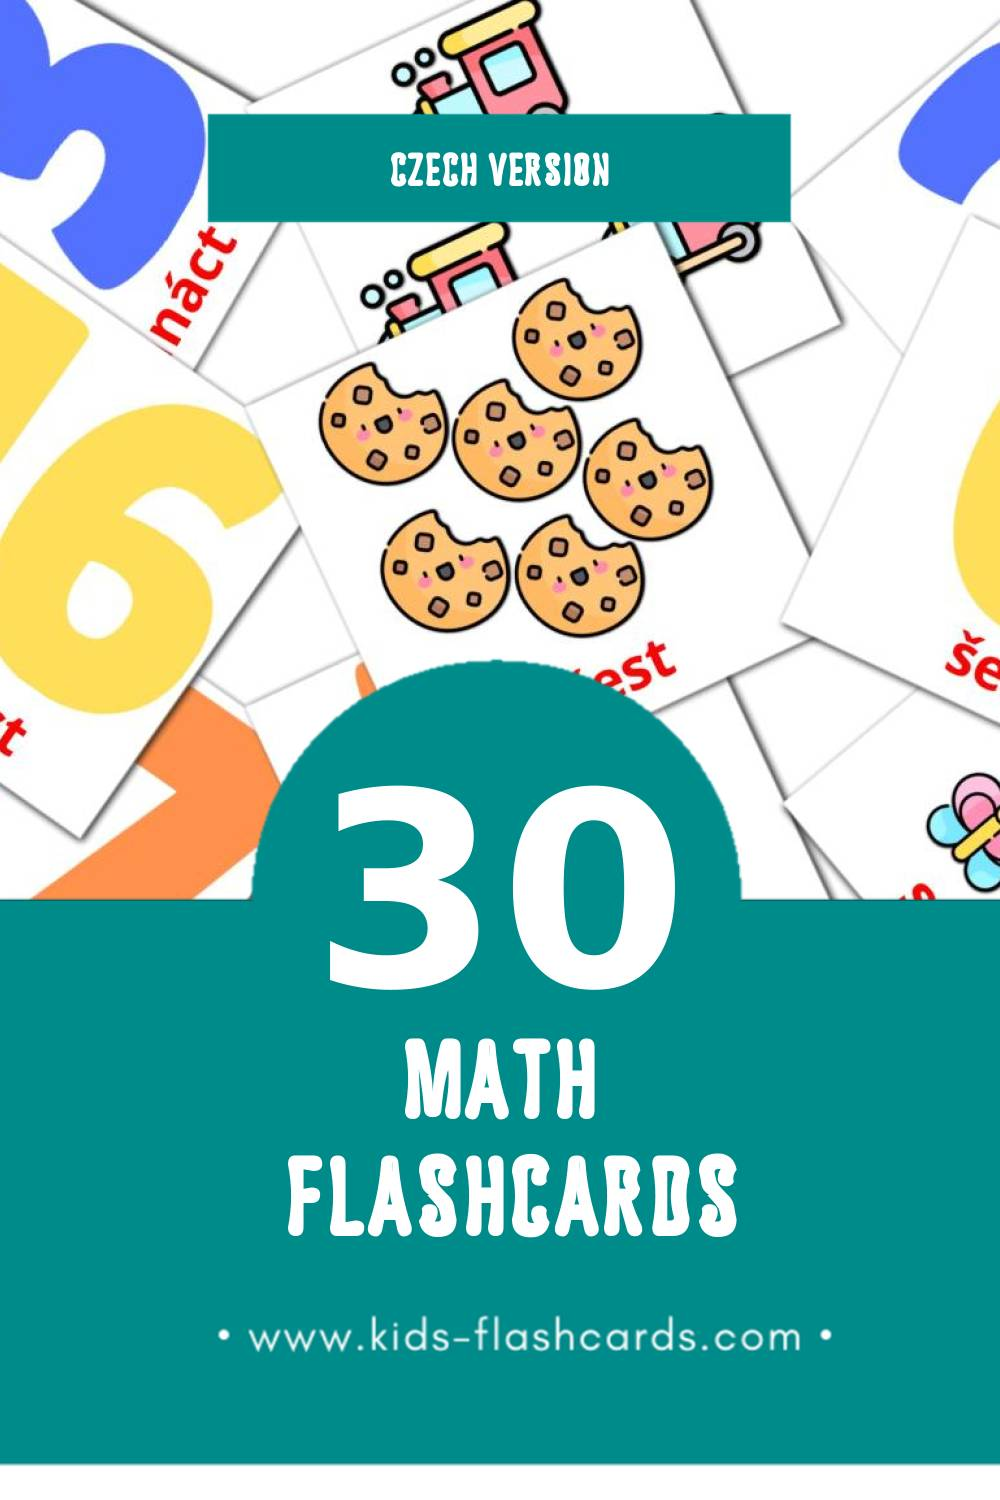 Visual 20 Flashcards for Toddlers (20 cards in Czech)